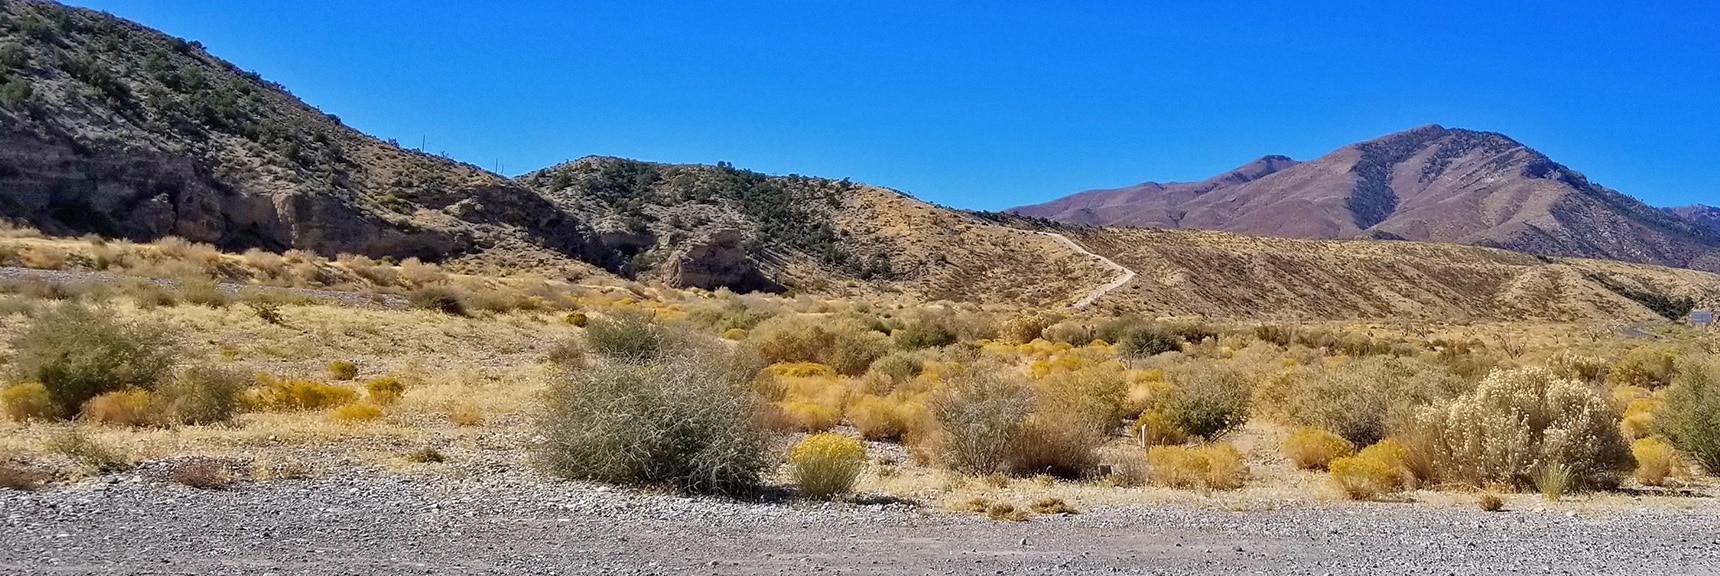 Departure Area from Kyle Canyon Rd to Harris Springs Canyon | Harris Springs Canyon | Biking from Centennial Hills | Spring Mountains, Nevada